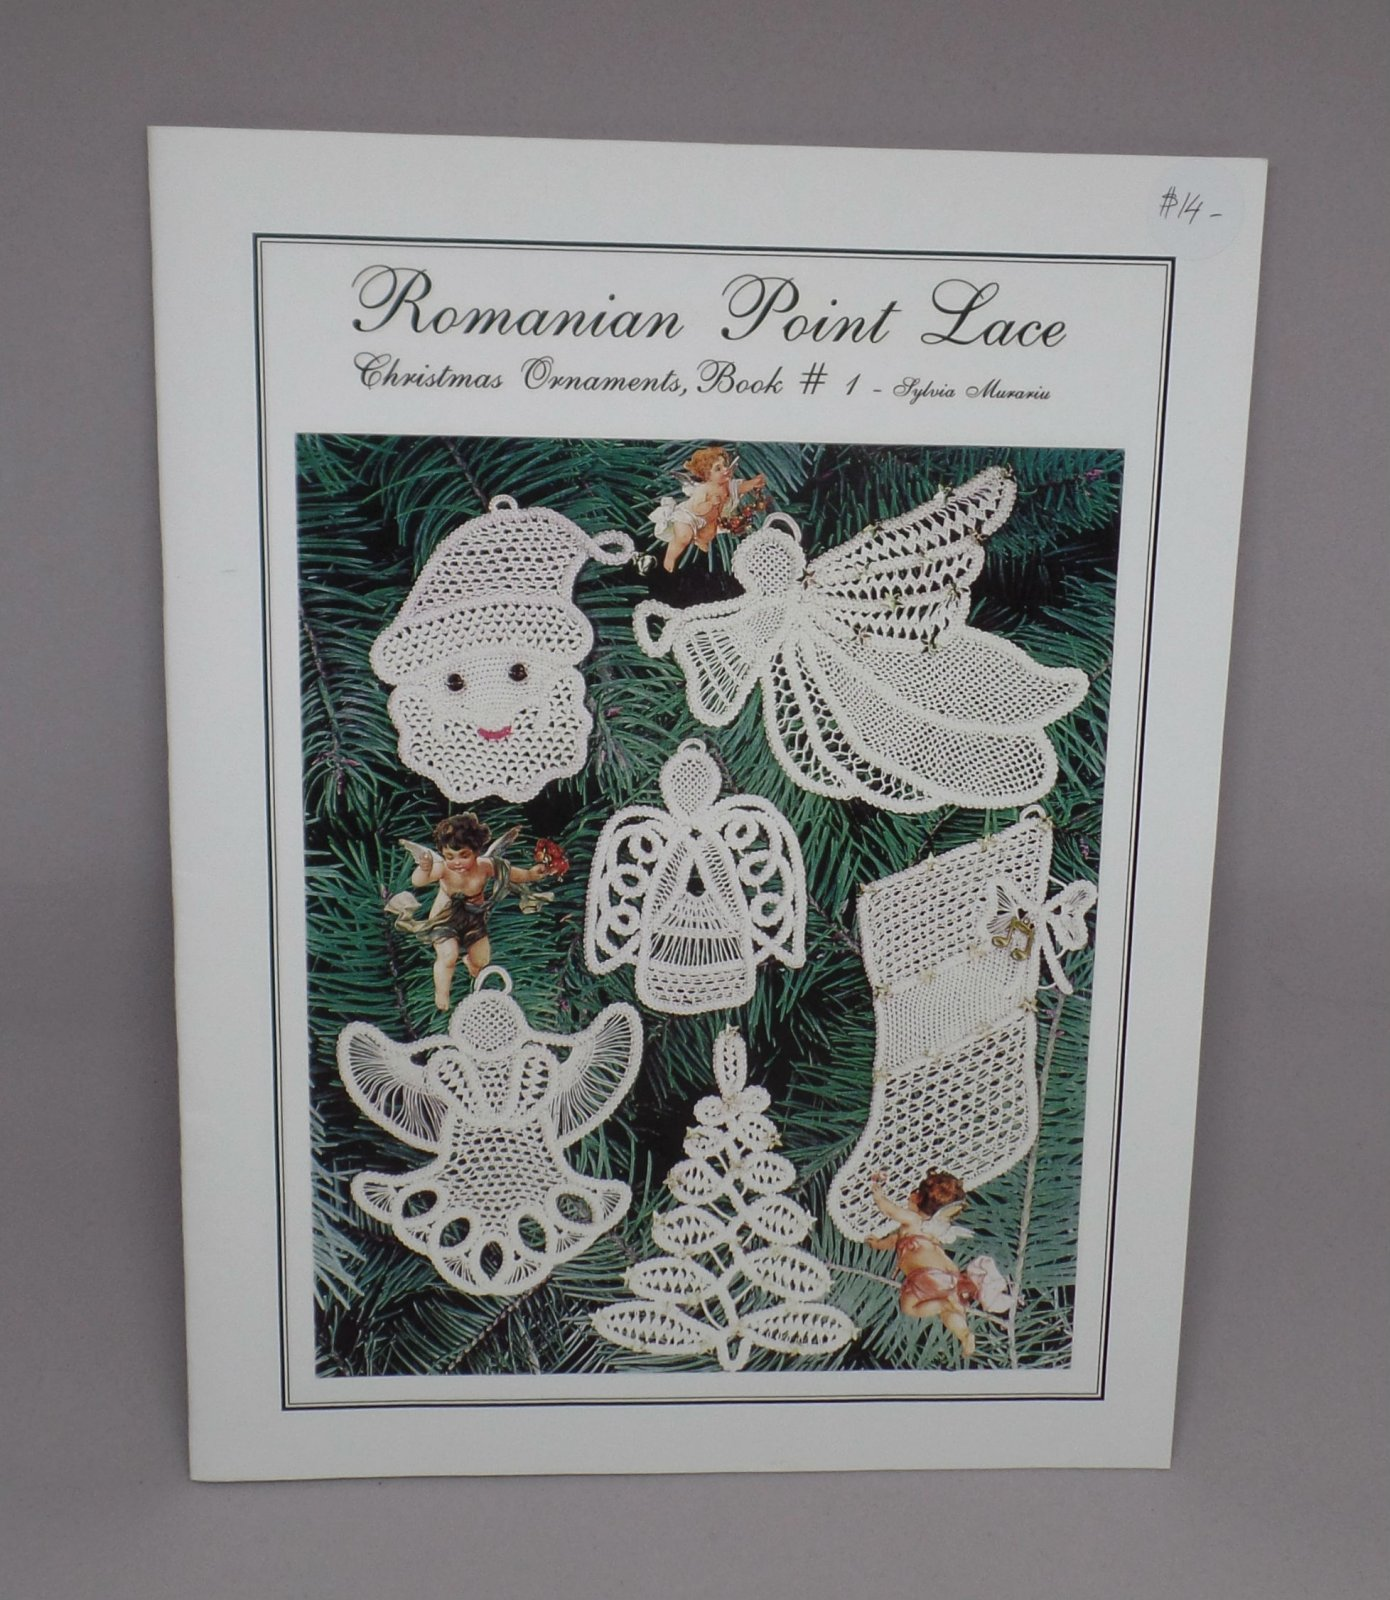 Romanian Point Lace Christmas Book #1